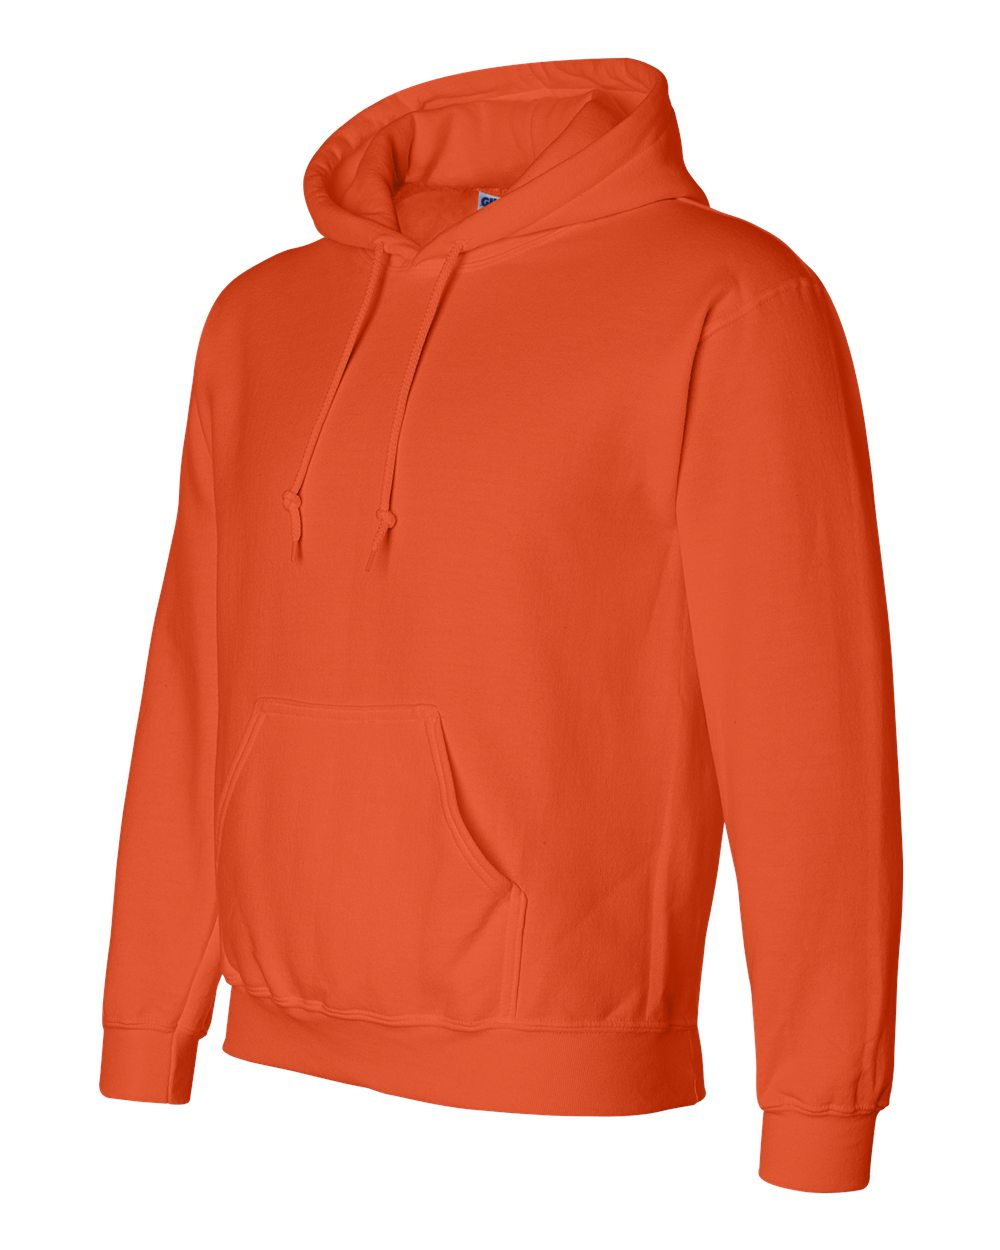 Gildan Ultra Blend Hooded sweater GIL12500 Orange